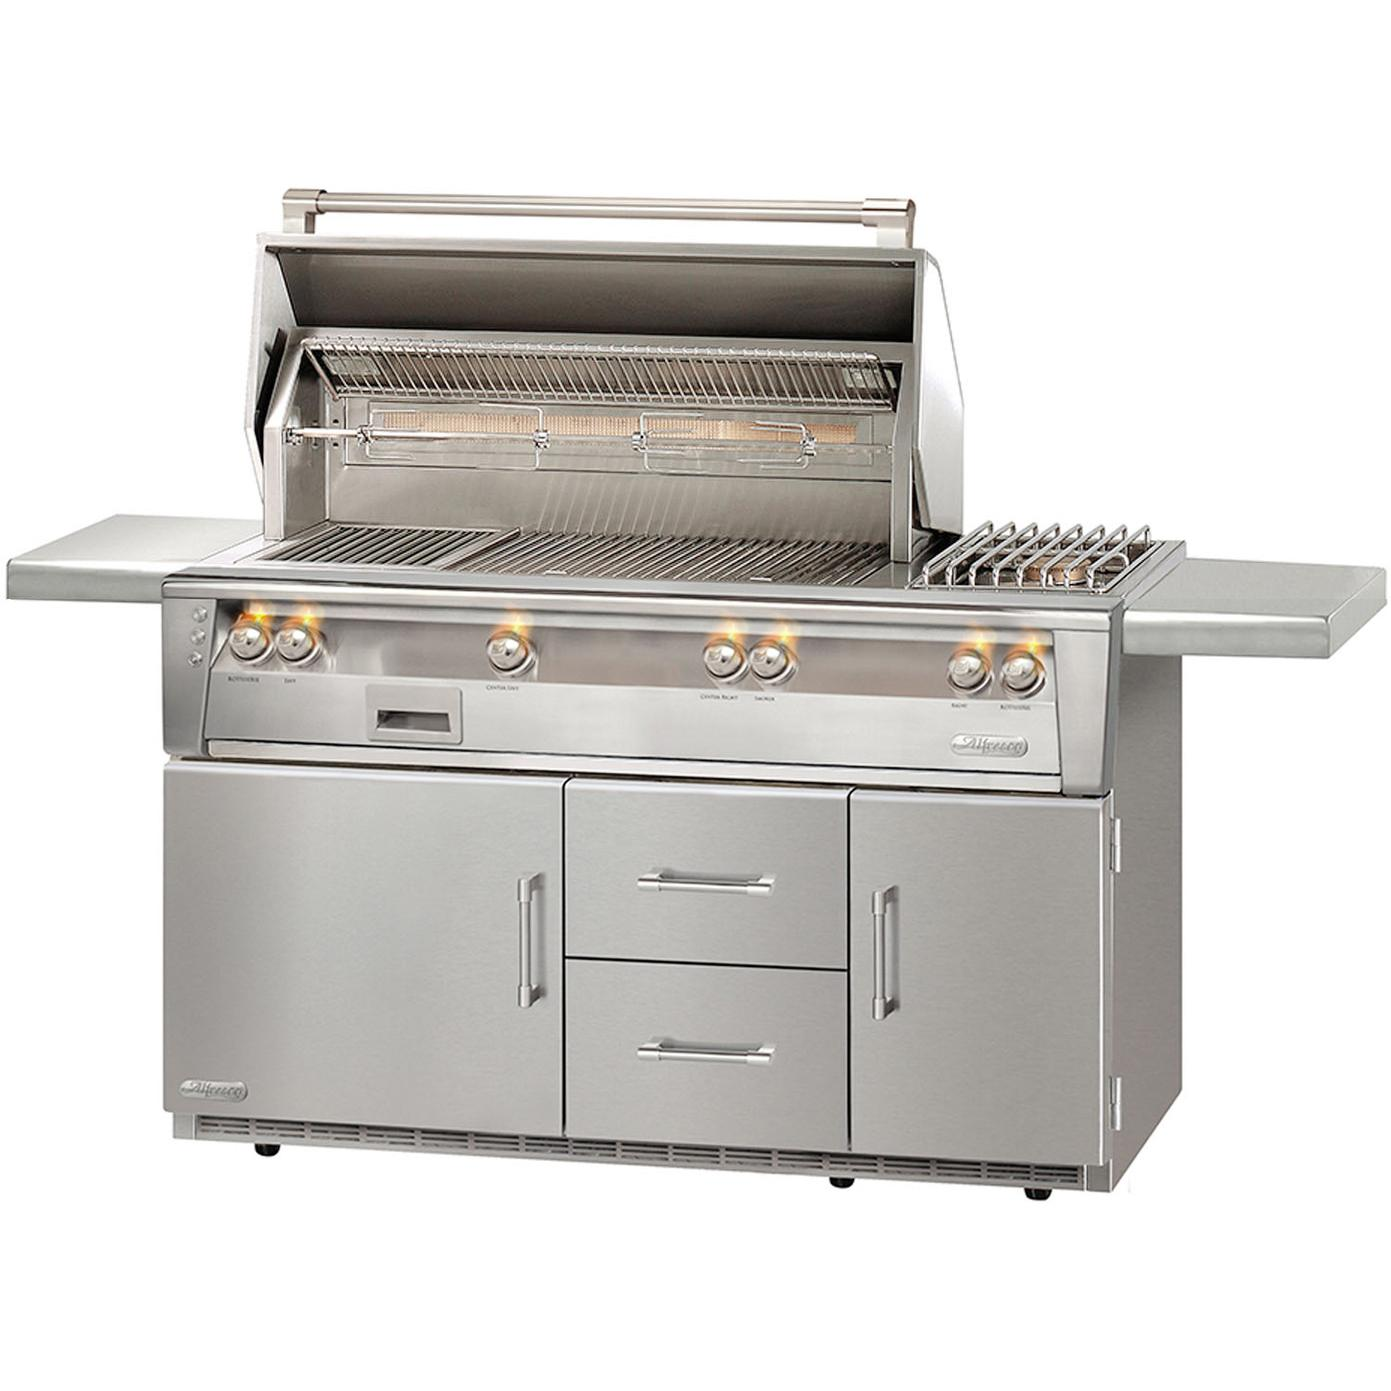 Alfresco LXE 56-Inch Propane Gas Deluxe Grill On Refrigerated Cart With Rotisserie And Side Burner - ALXE-56R-LP 2911934